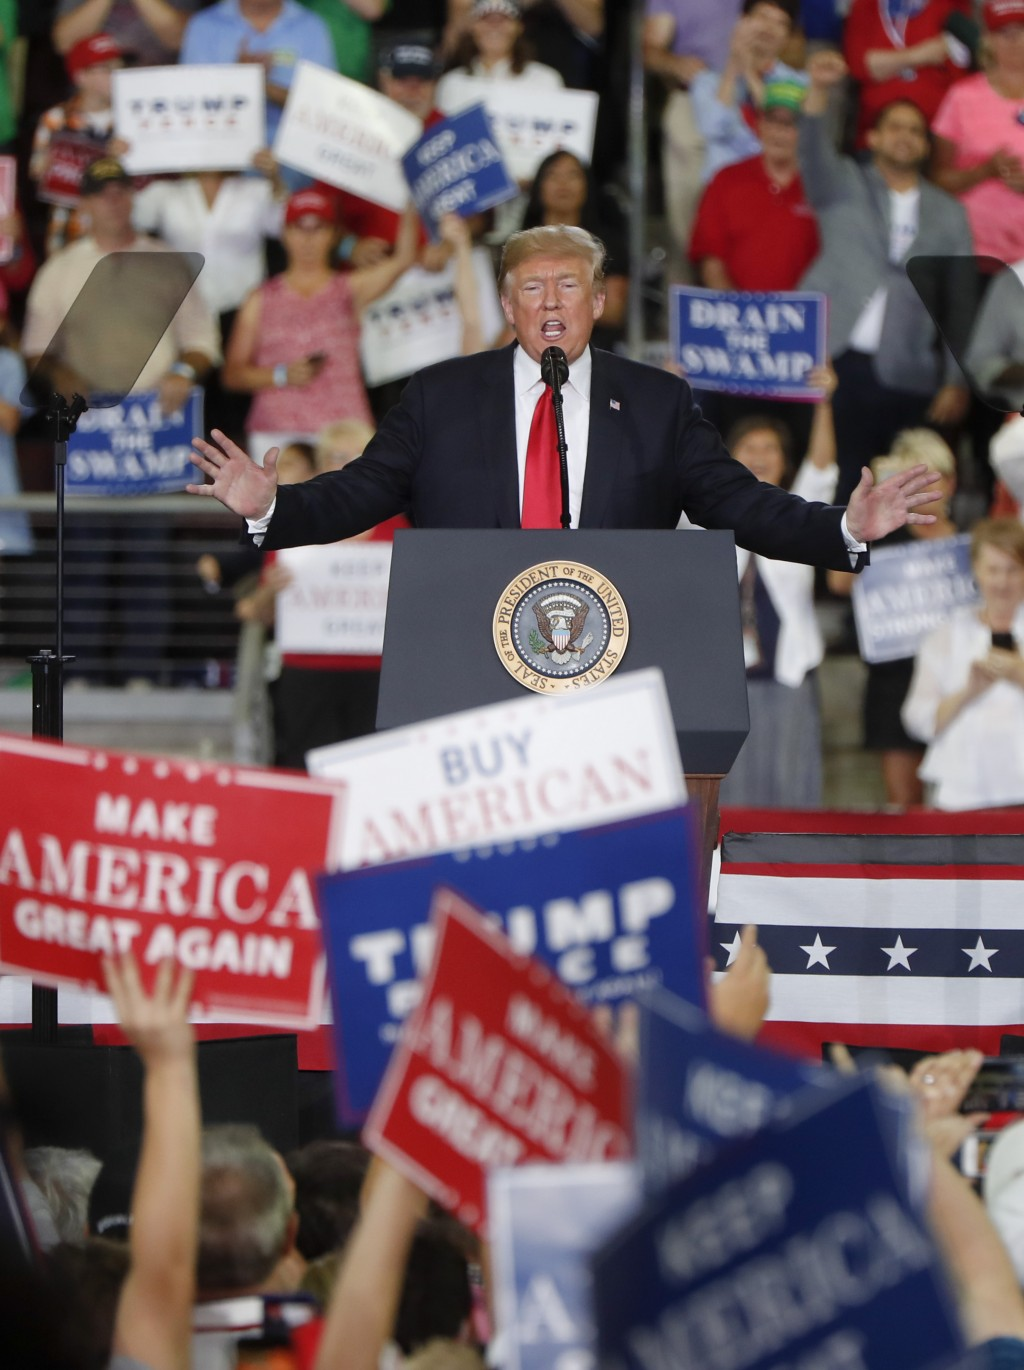 President Donald Trump speaks at a rally endorsing the Republican ticket in Pennsylvania on Wednesday, Oct. 10, 2018 in Erie, Pa.(AP Photo/Keith Srako...